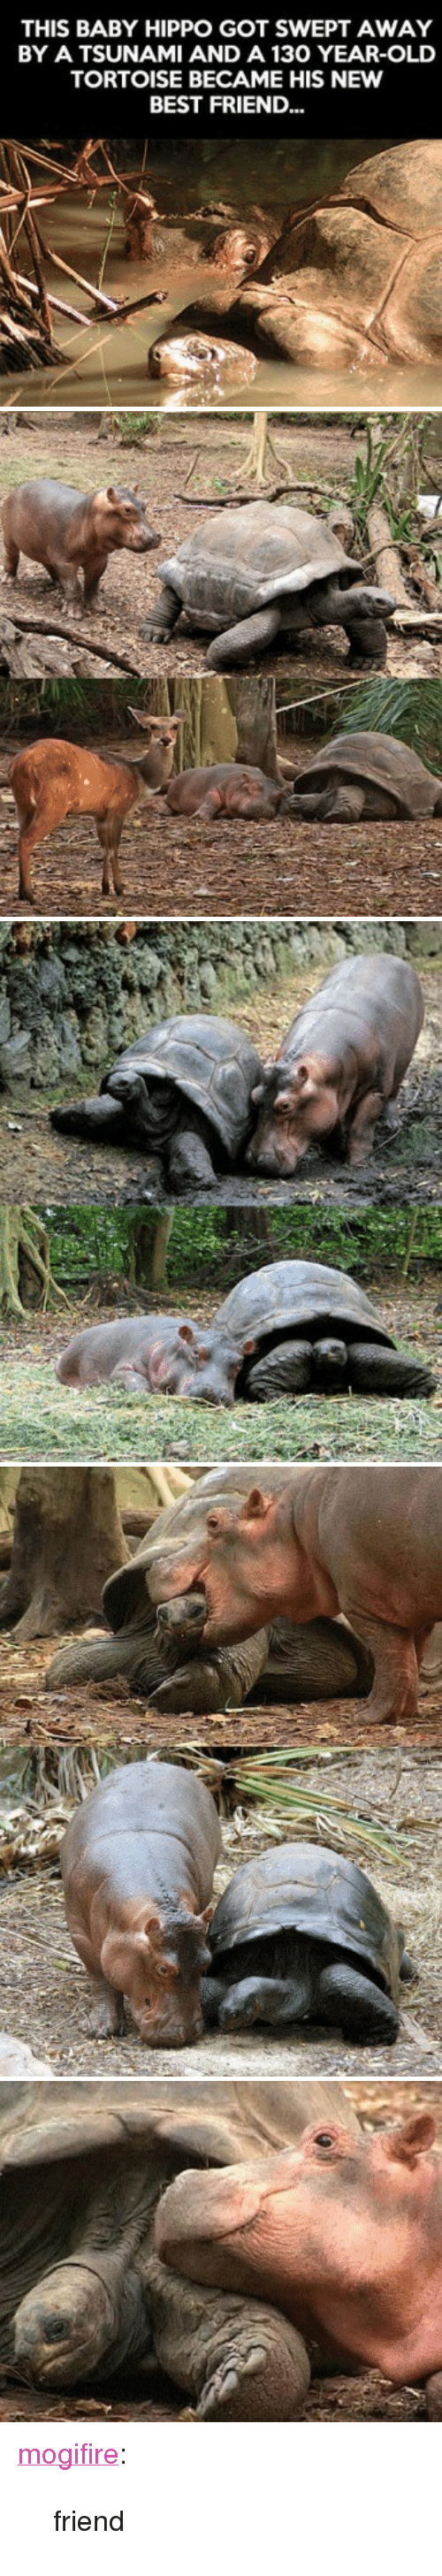 """Baby Hippo: THIS BABY HIPPO GOT SWEPT AWAY  BY A TSUNAMI AND A 130 YEAR-OLD  TORTOISE BECAME HIS NEW  BEST FRIEND... <p><a href=""""http://mogifire.tumblr.com/post/157412233739/friend"""" class=""""tumblr_blog"""">mogifire</a>:</p><blockquote><p>friend<br/></p></blockquote>"""